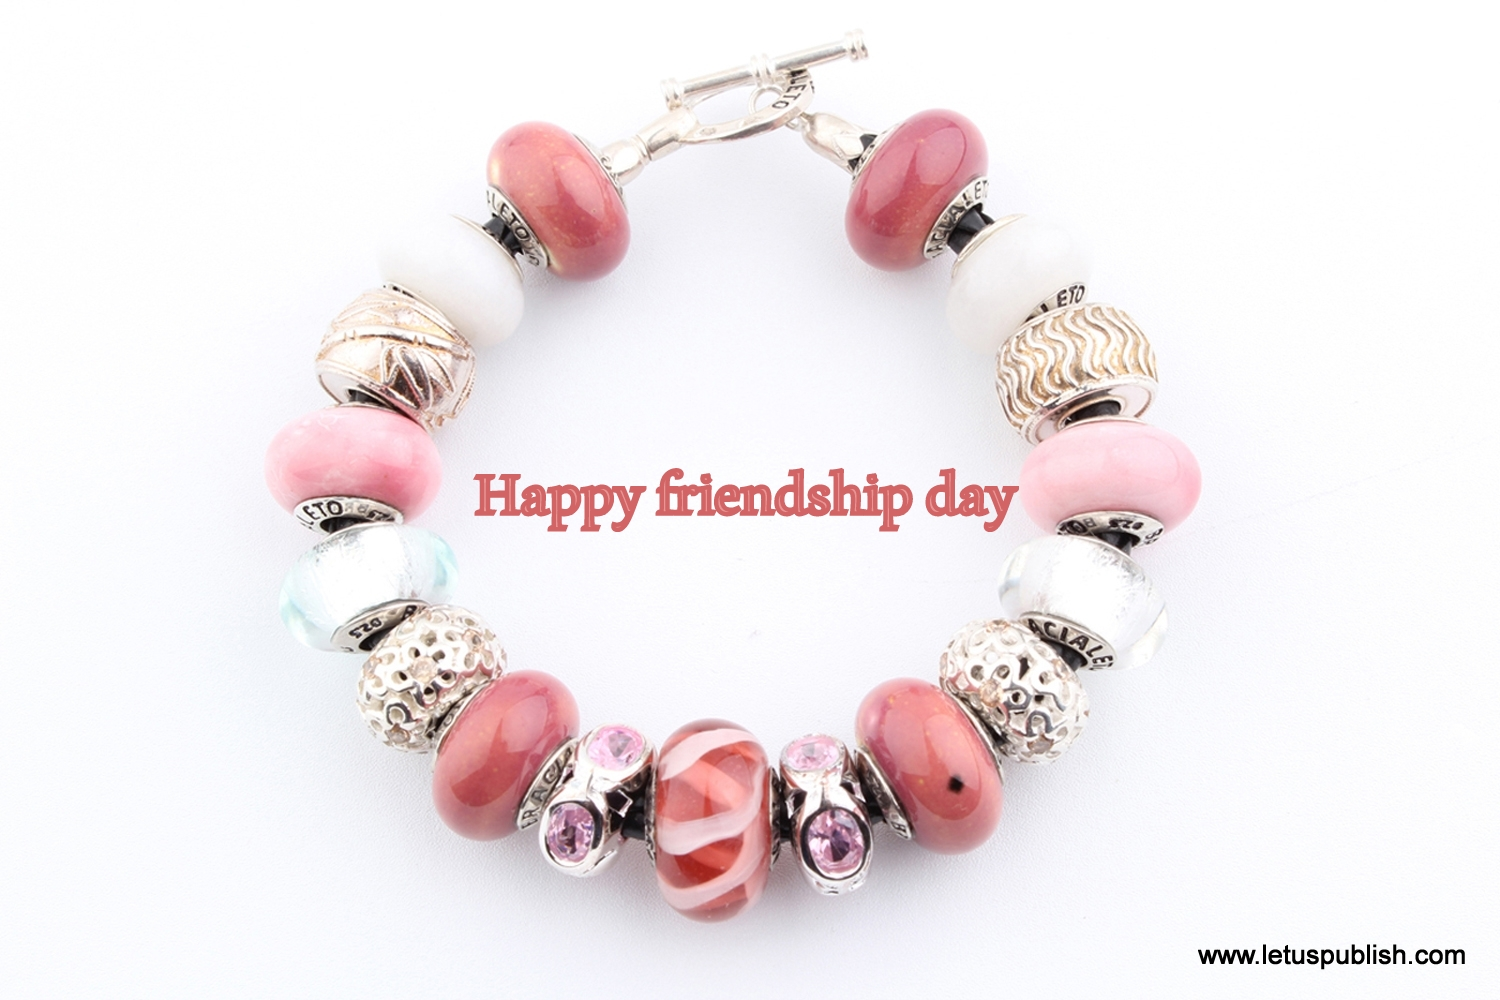 Happy friendship day bracelet wallpaper